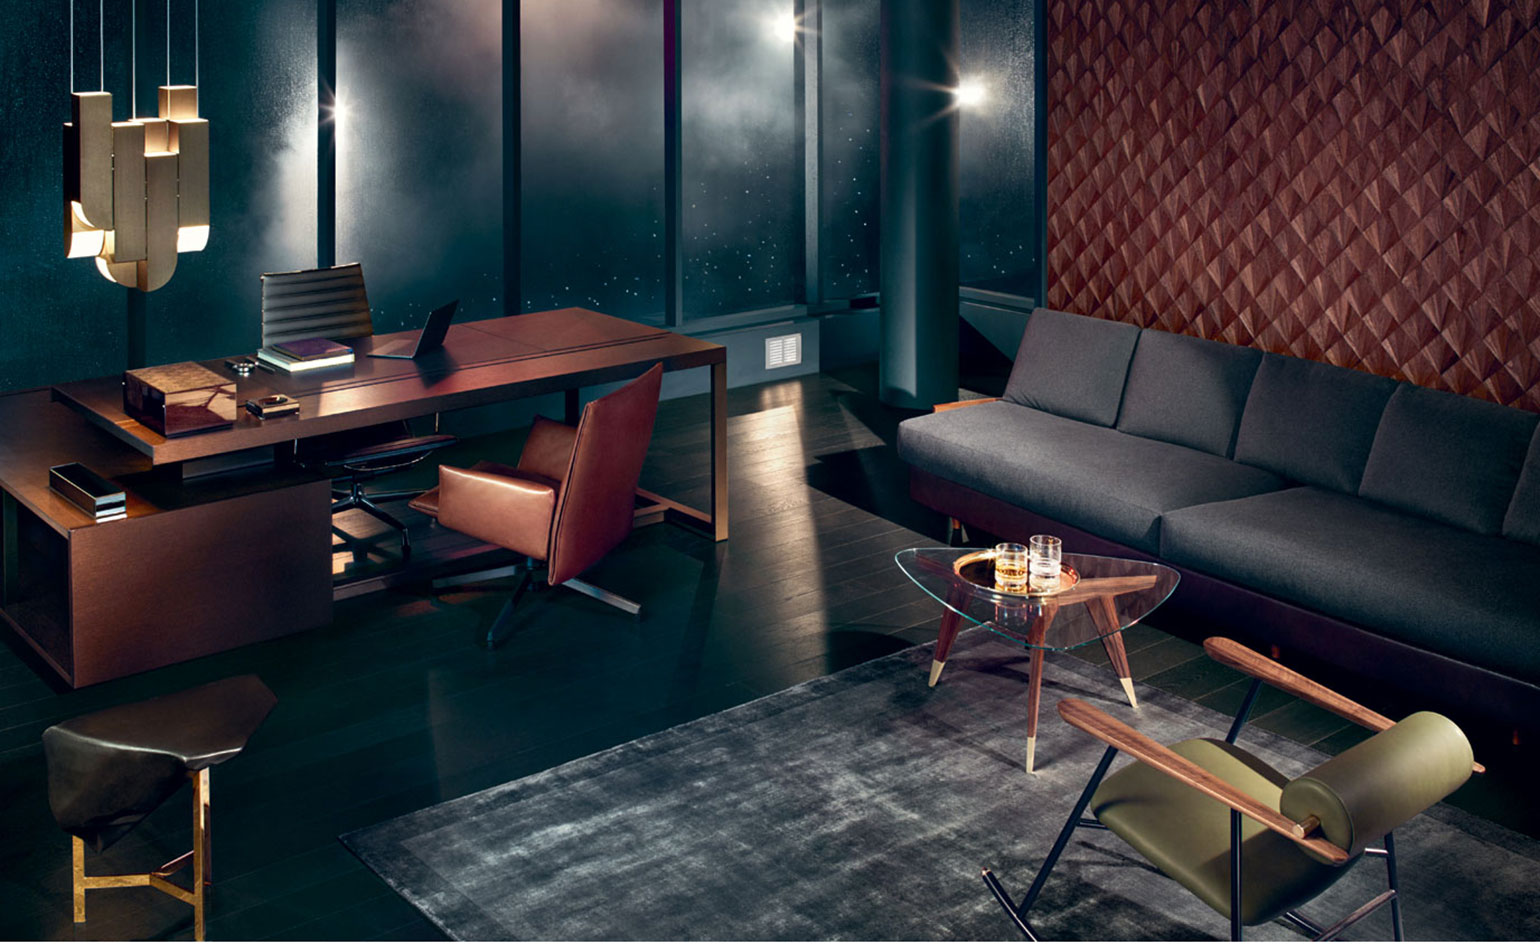 Wondrous High Office Perfectly Tailored Suites For Our Top Level Execs Largest Home Design Picture Inspirations Pitcheantrous